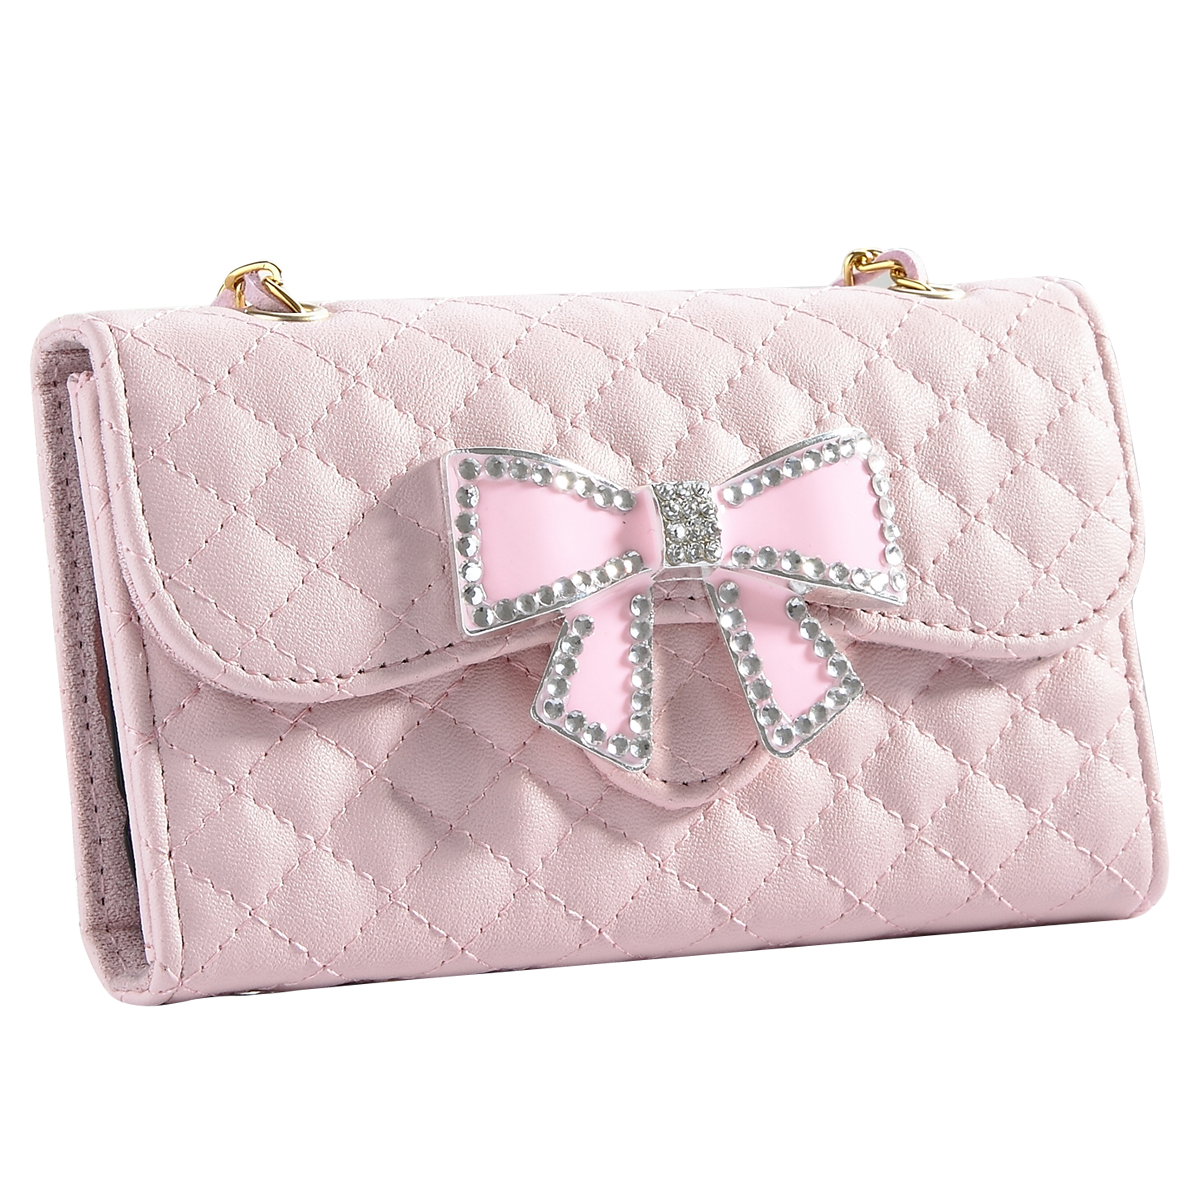 Galaxy S4 Case, S4 Case - ULAK Bling Glitter Rhinestone Bow Synthetic Leather Wallet Folio Case Cover Credit Card Holder w/ Magnetic Clasp for Samsung Galaxy S4 SIV i9500 (Lovely Pink)